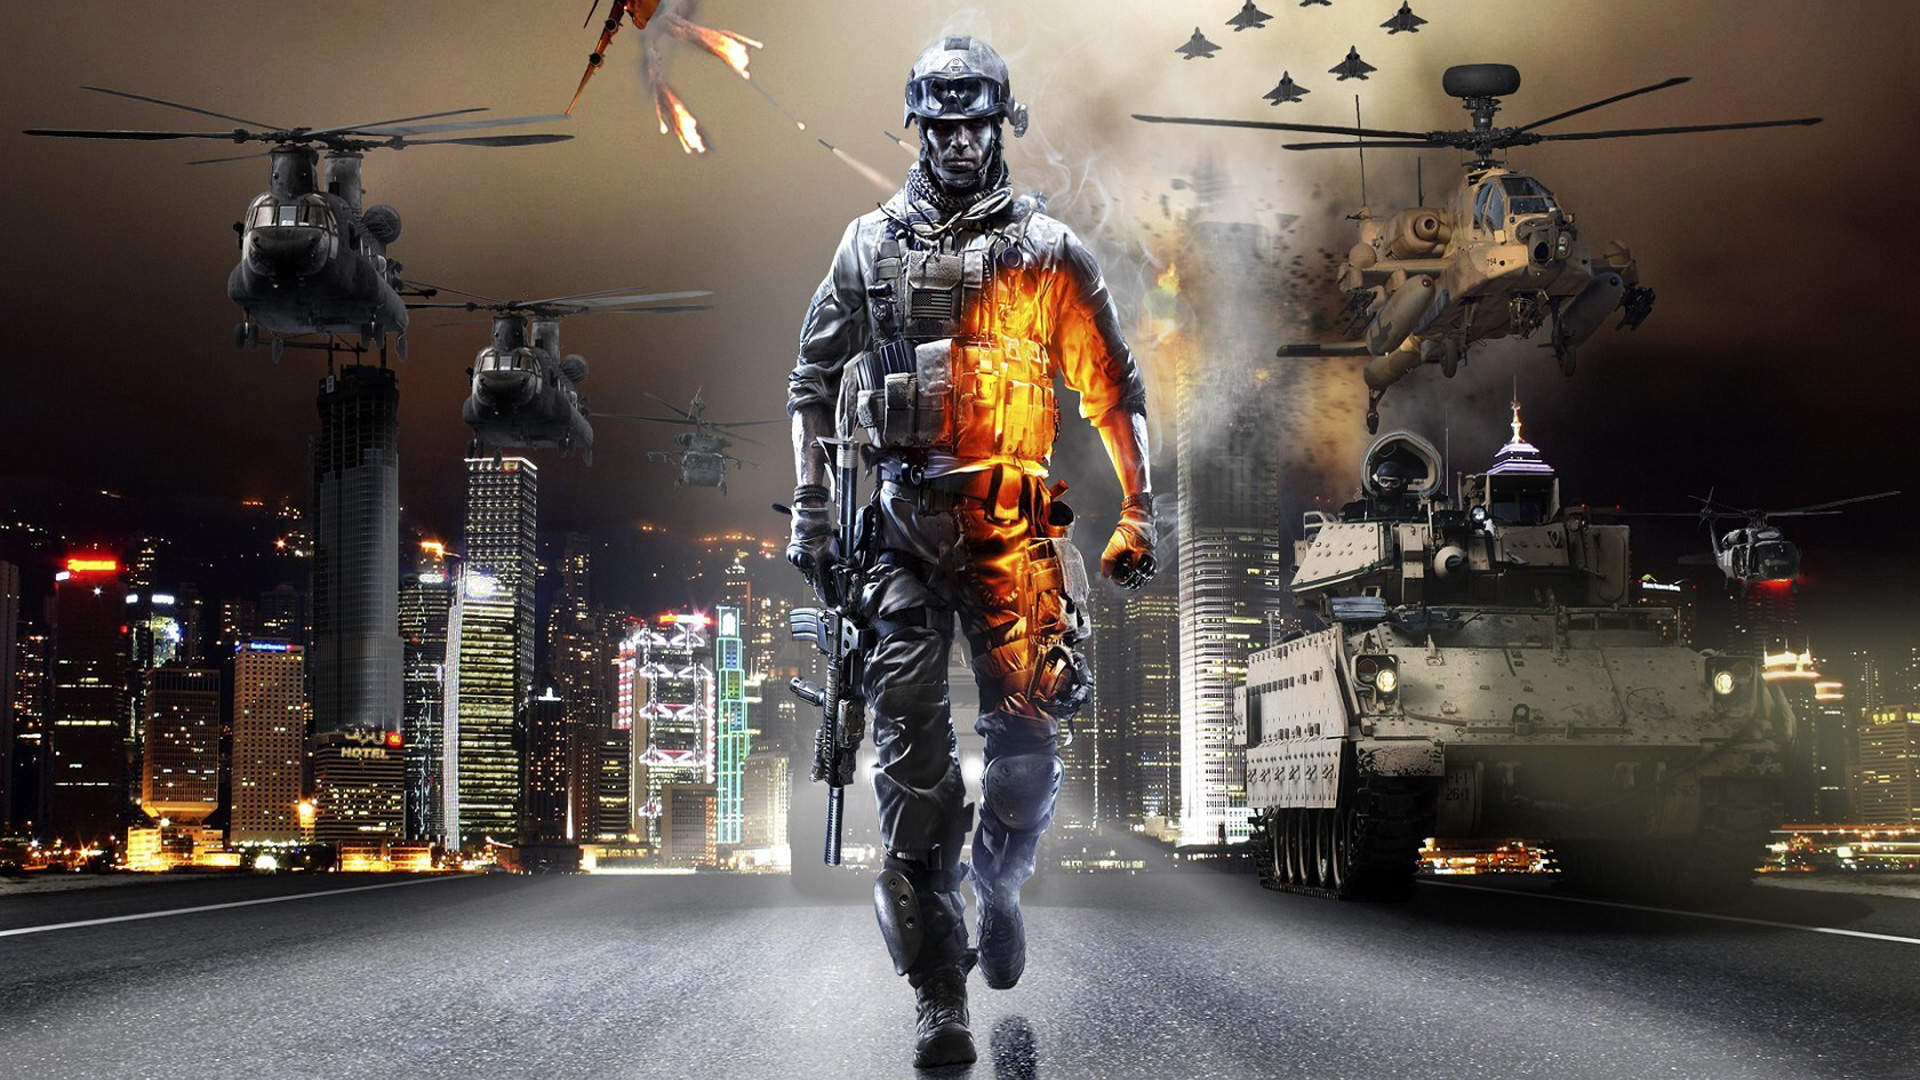 battlefield 3 full hd wallpaper and background image | 1920x1080